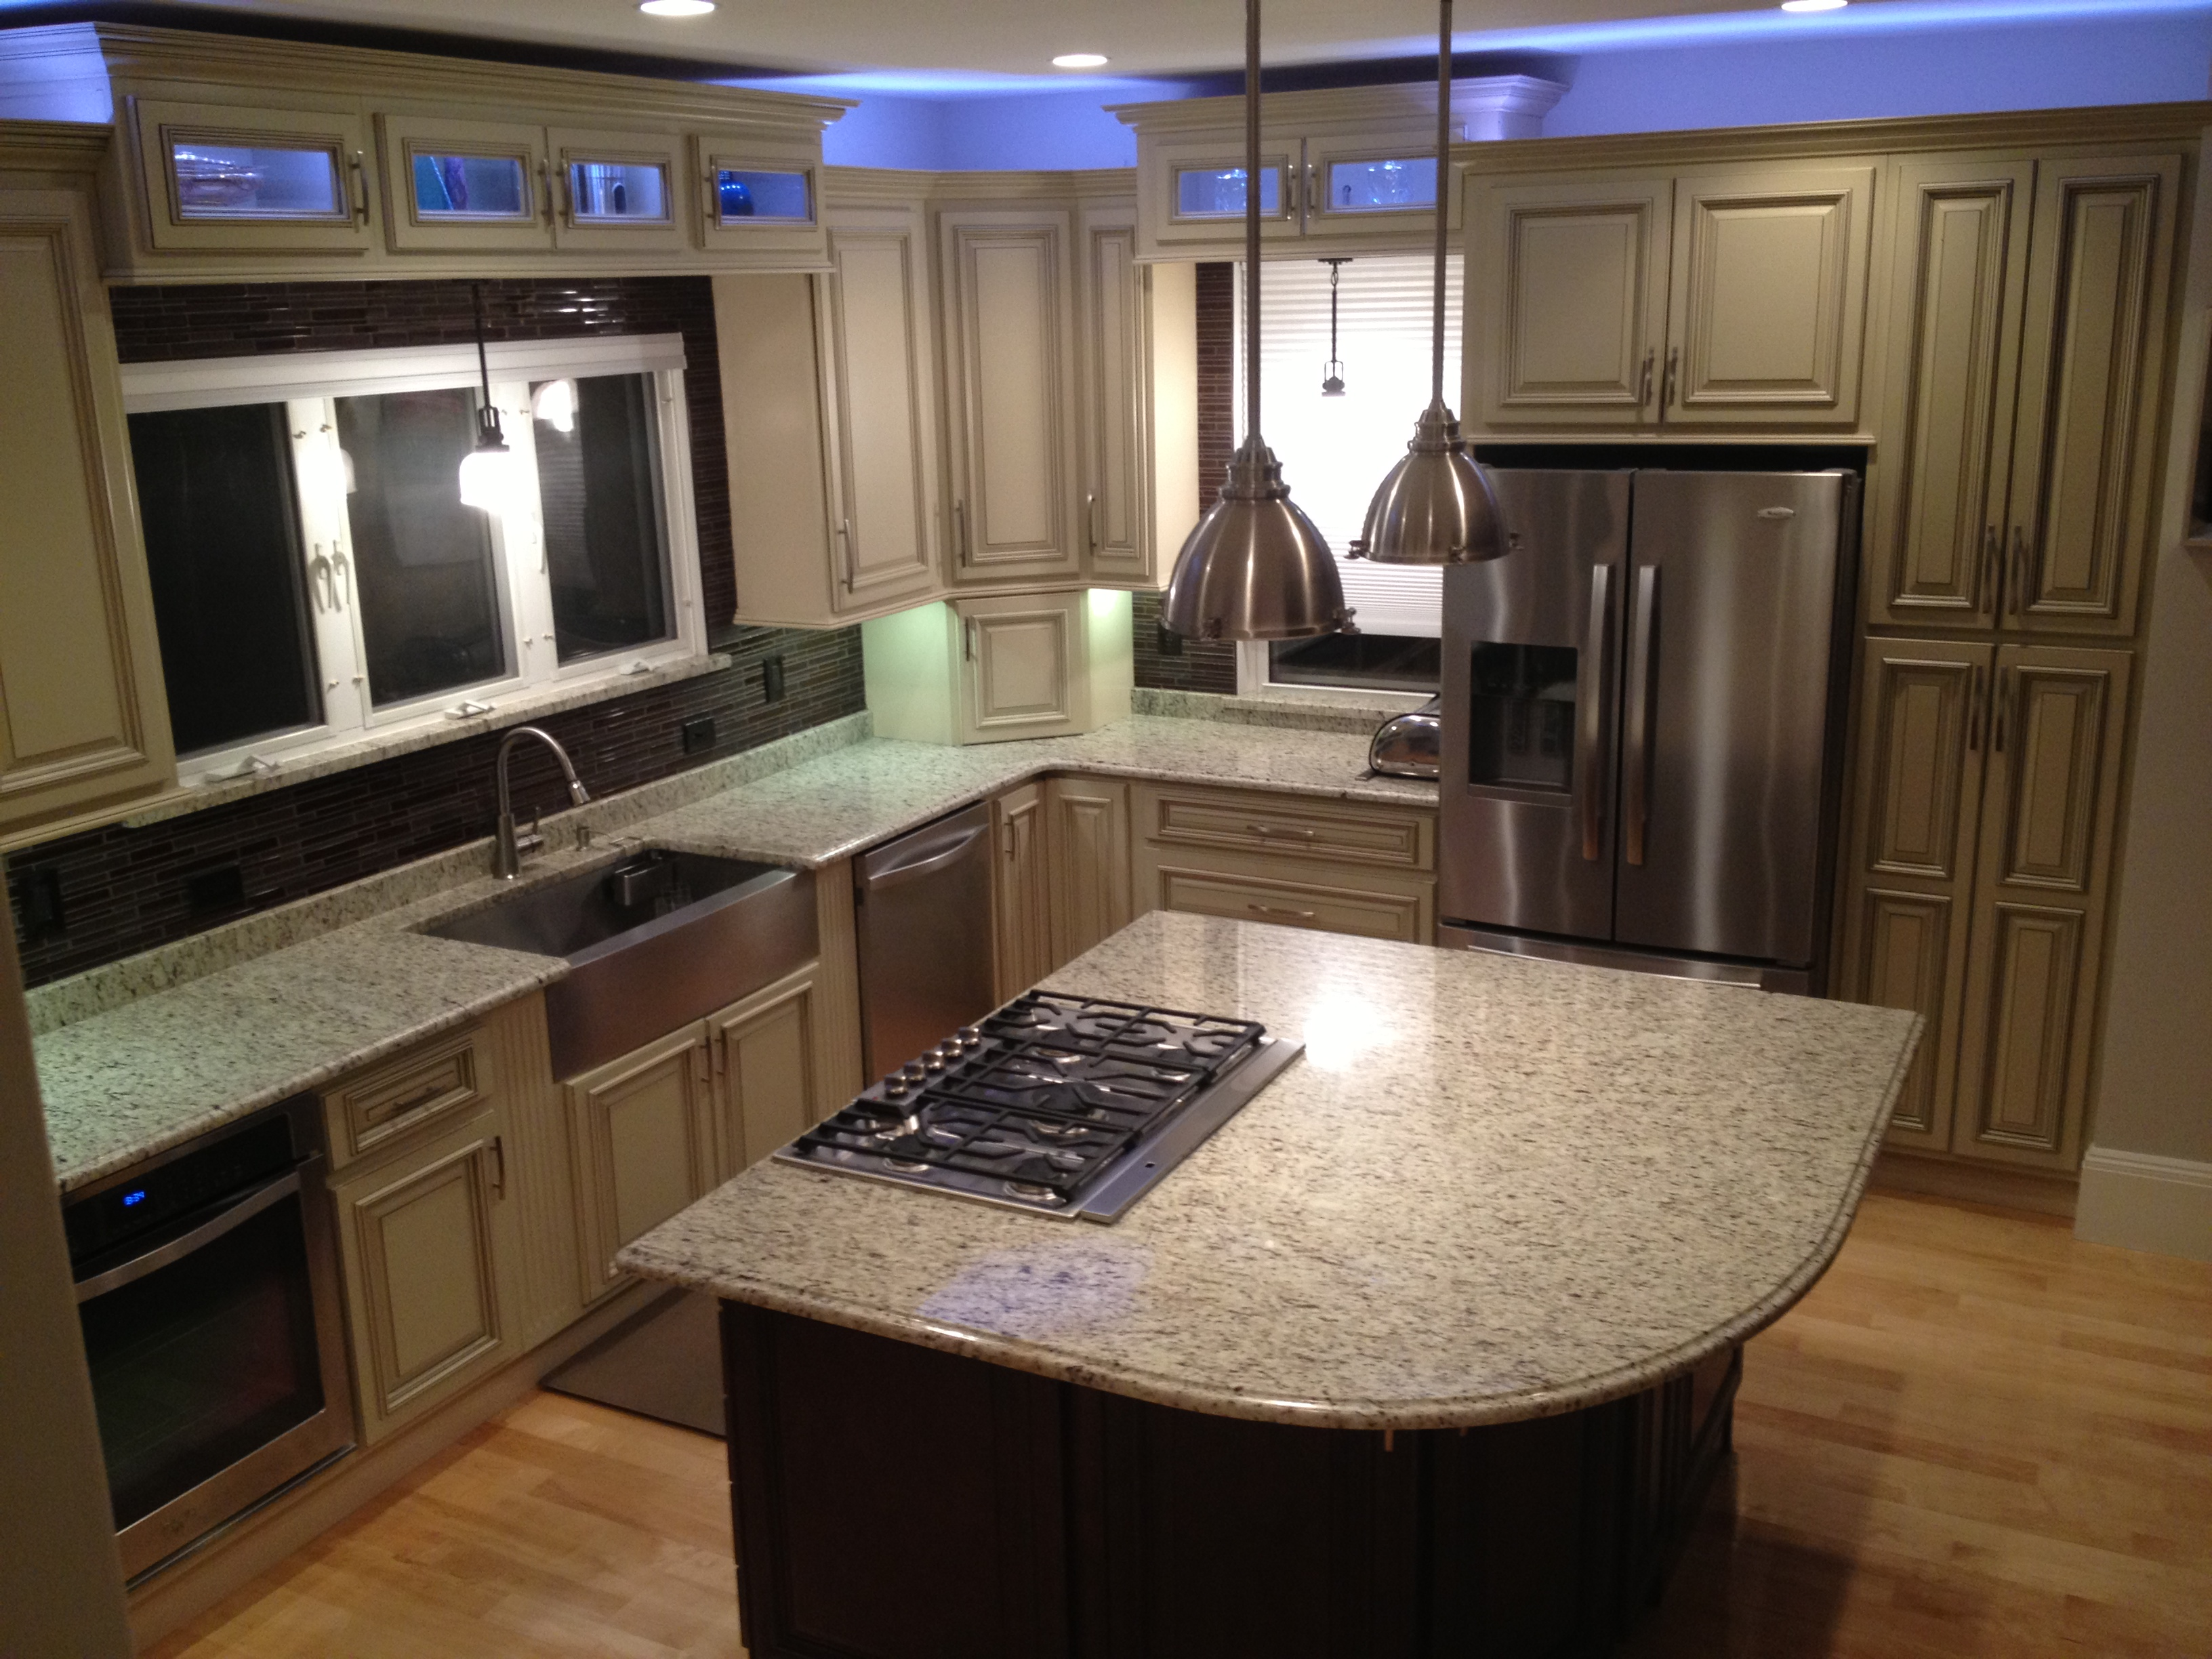 amp on connecticut pin outlet inspirational cabinetry cabinet kitchen cubitac of bath center by